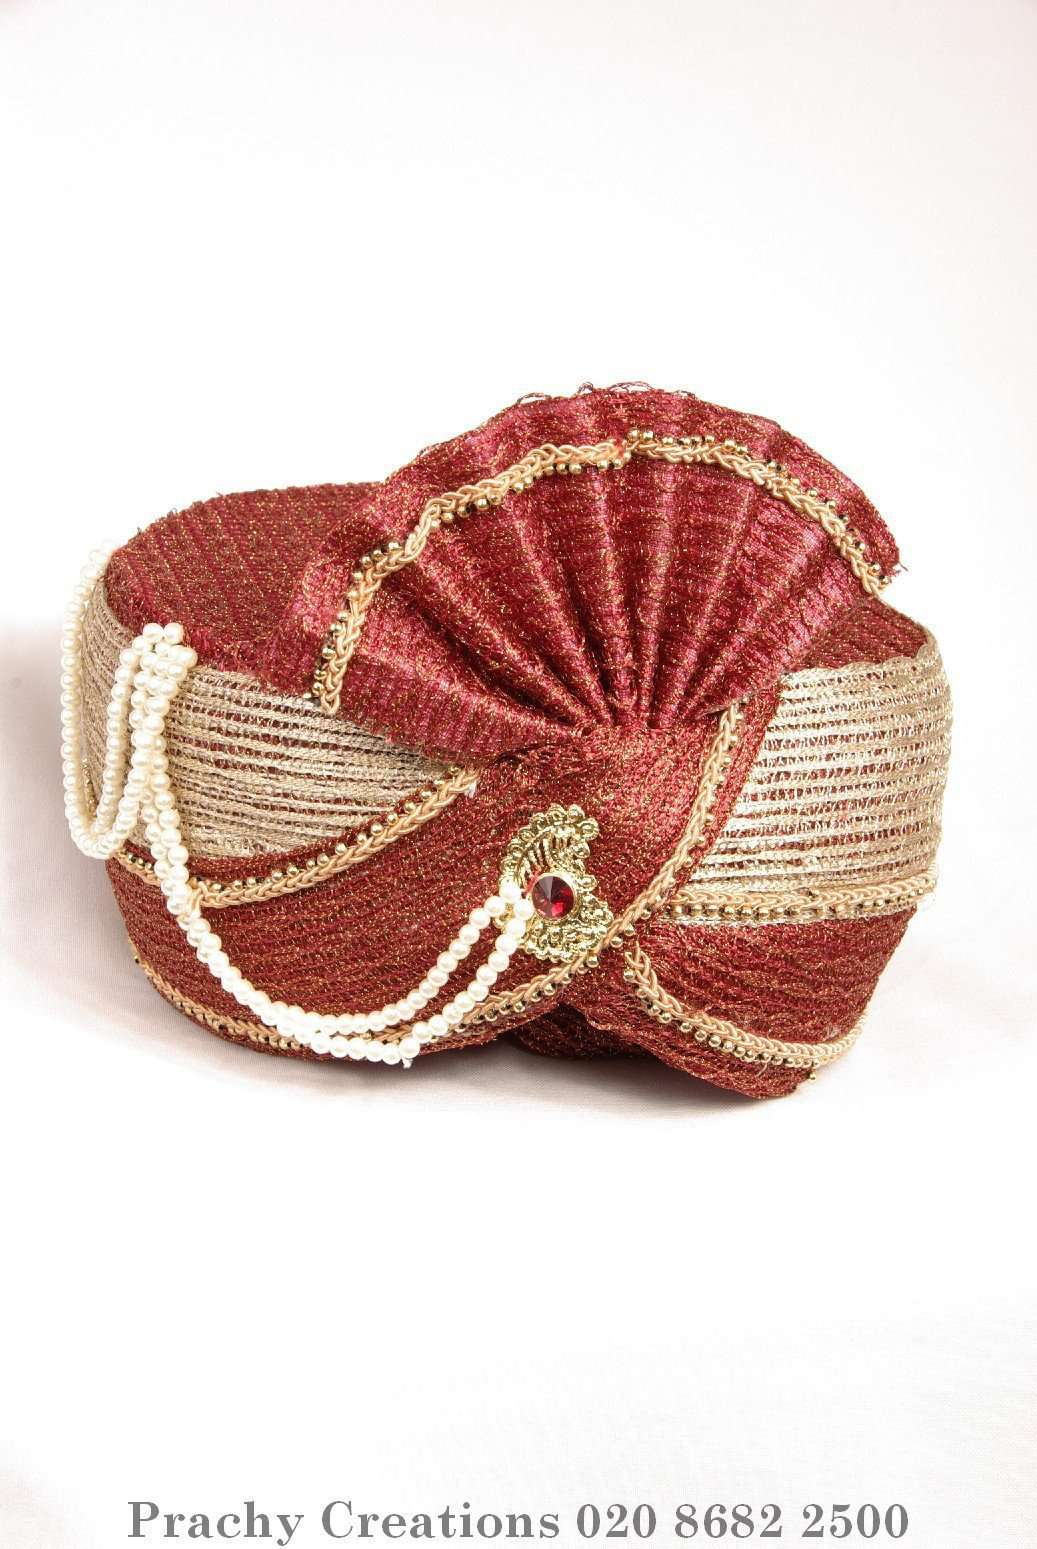 Prachy Creations : Red / gold Crushed net Turban 201 - 1401 H0416